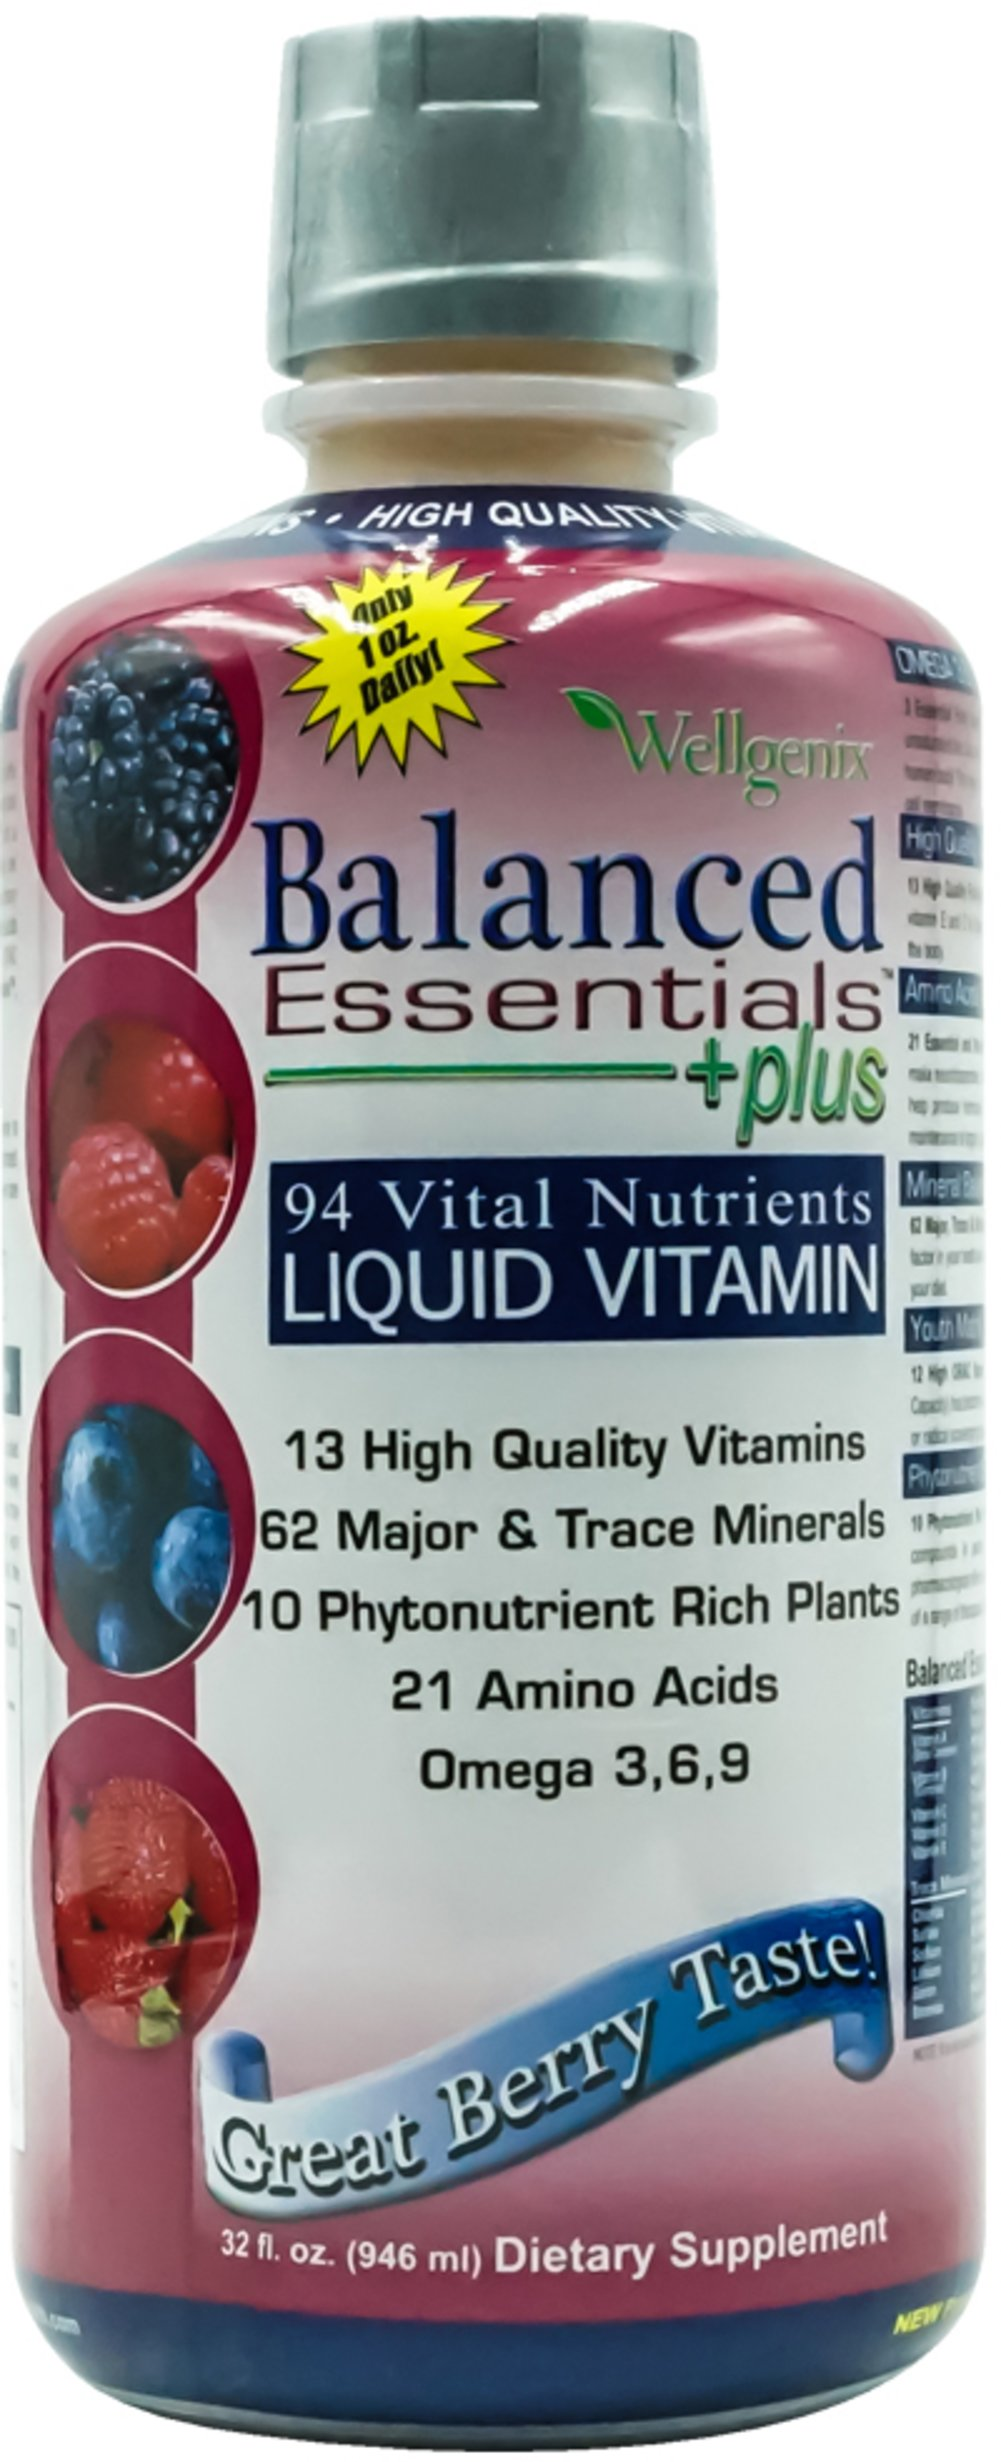 Balanced Essential™ Multivitamin <p><strong>From the Manufacturer:</strong></p><p>Balanced Essentials™ with 94 Vital Nutrients:</p><p>13 High Quality Vitamins</p><p>62 Major & Trace Minerals</p><p>10 Phytonutrient Rich Plants</p><p>18 Amino Acids</p><p>Omega 3,6,9</p><p>Manufactured by Wellgenix</p> 32 oz Liquid  $19.99